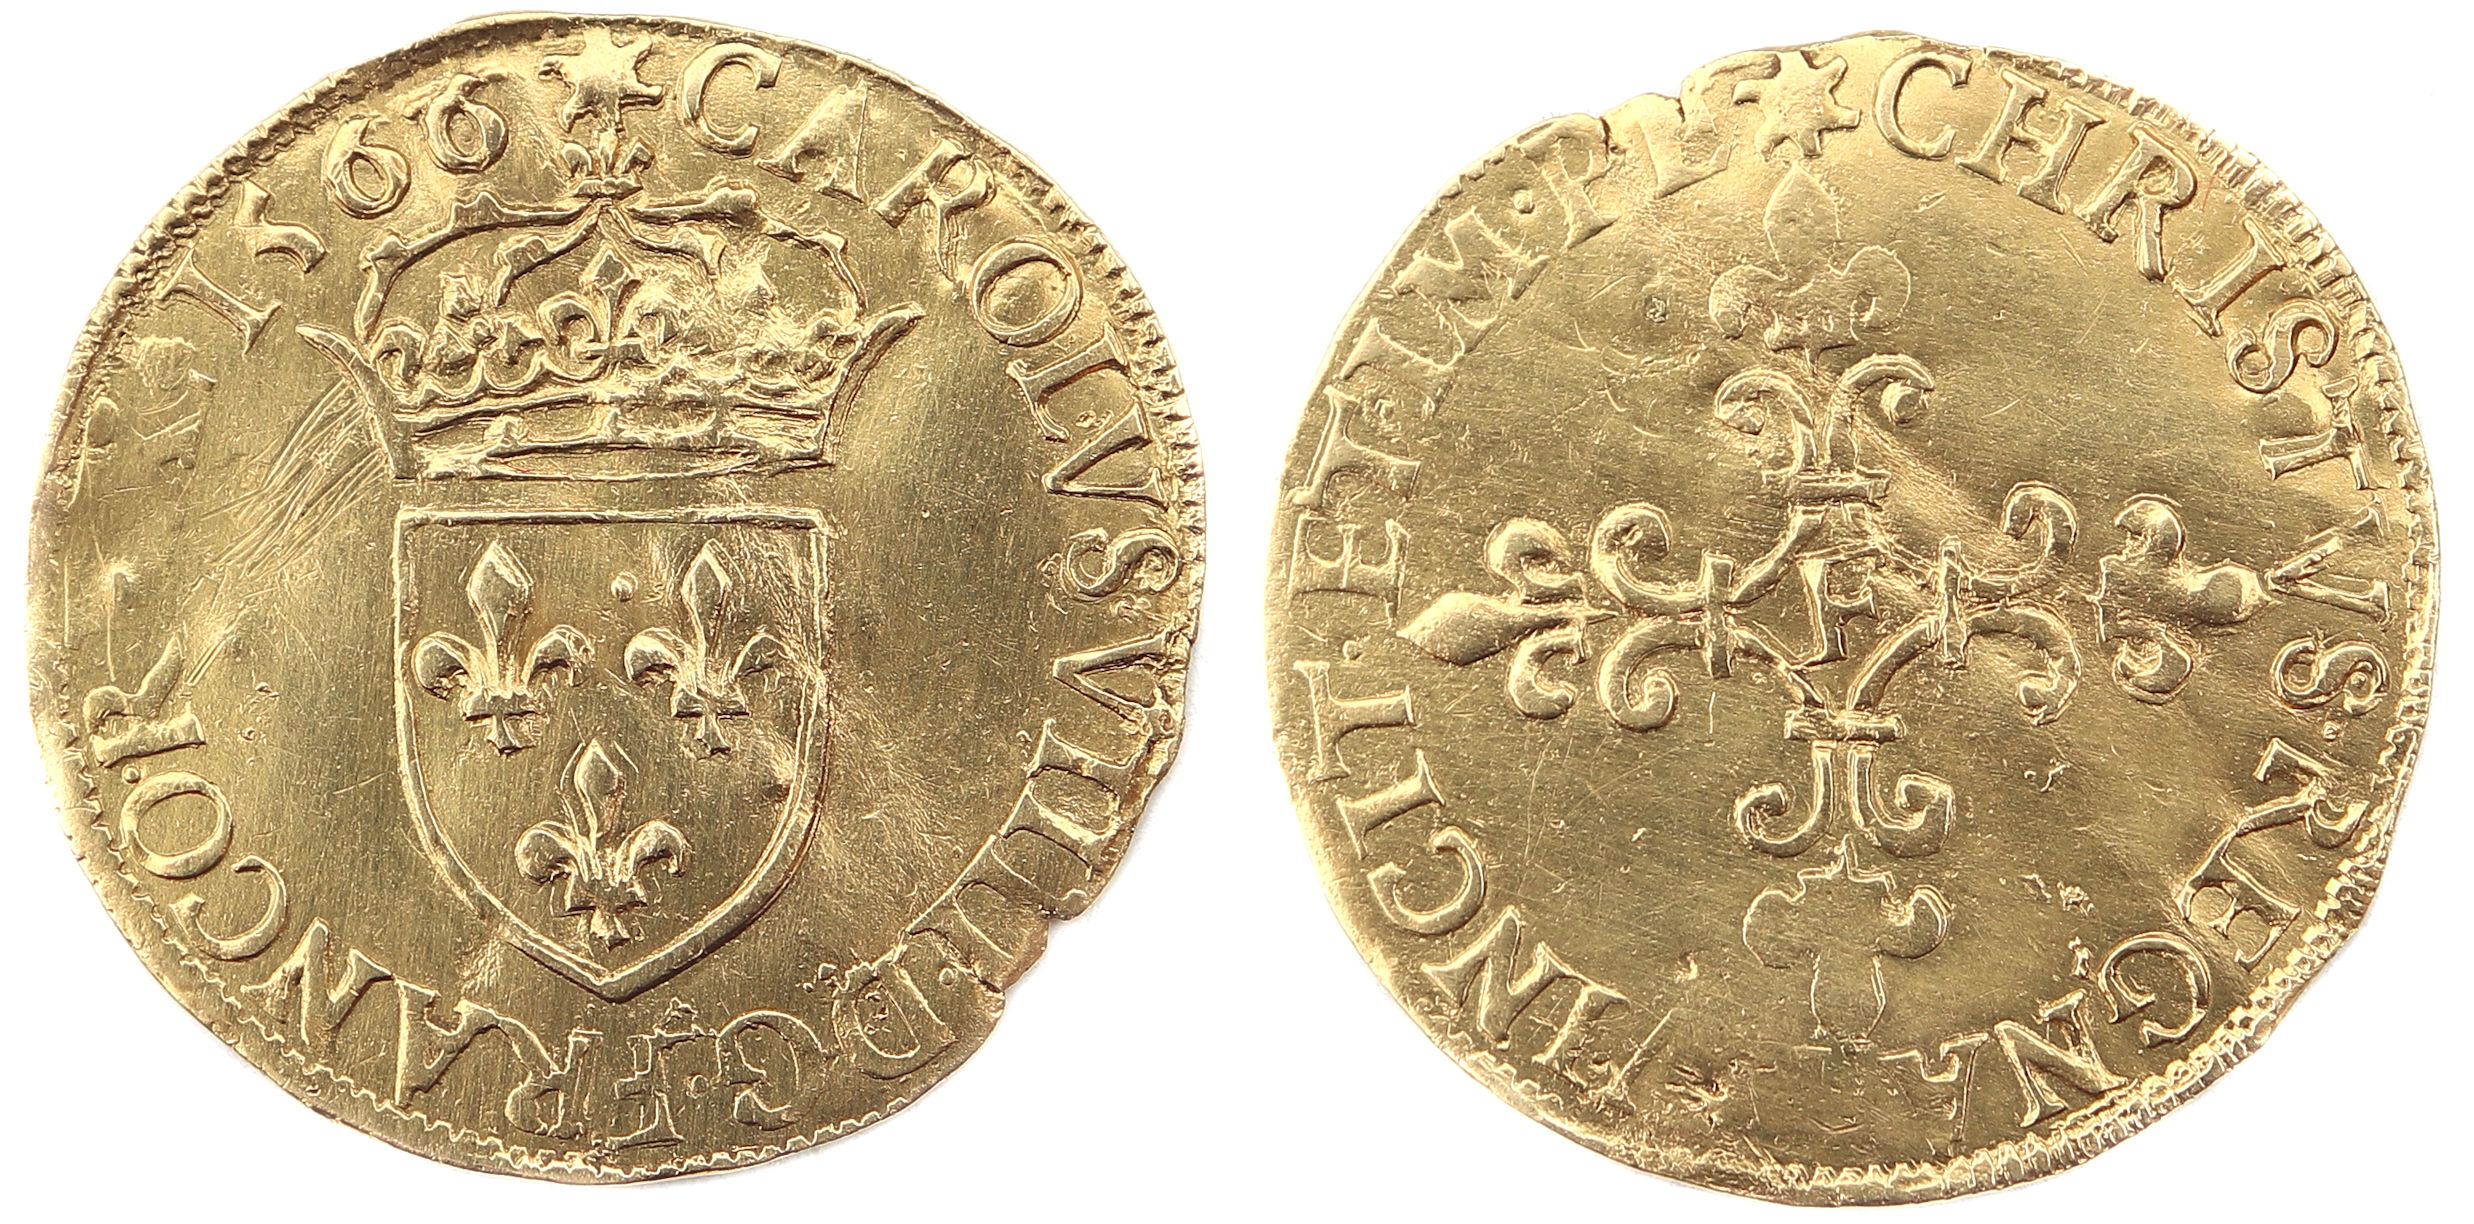 CHARLES IX ECU OR 1566 ANGERS